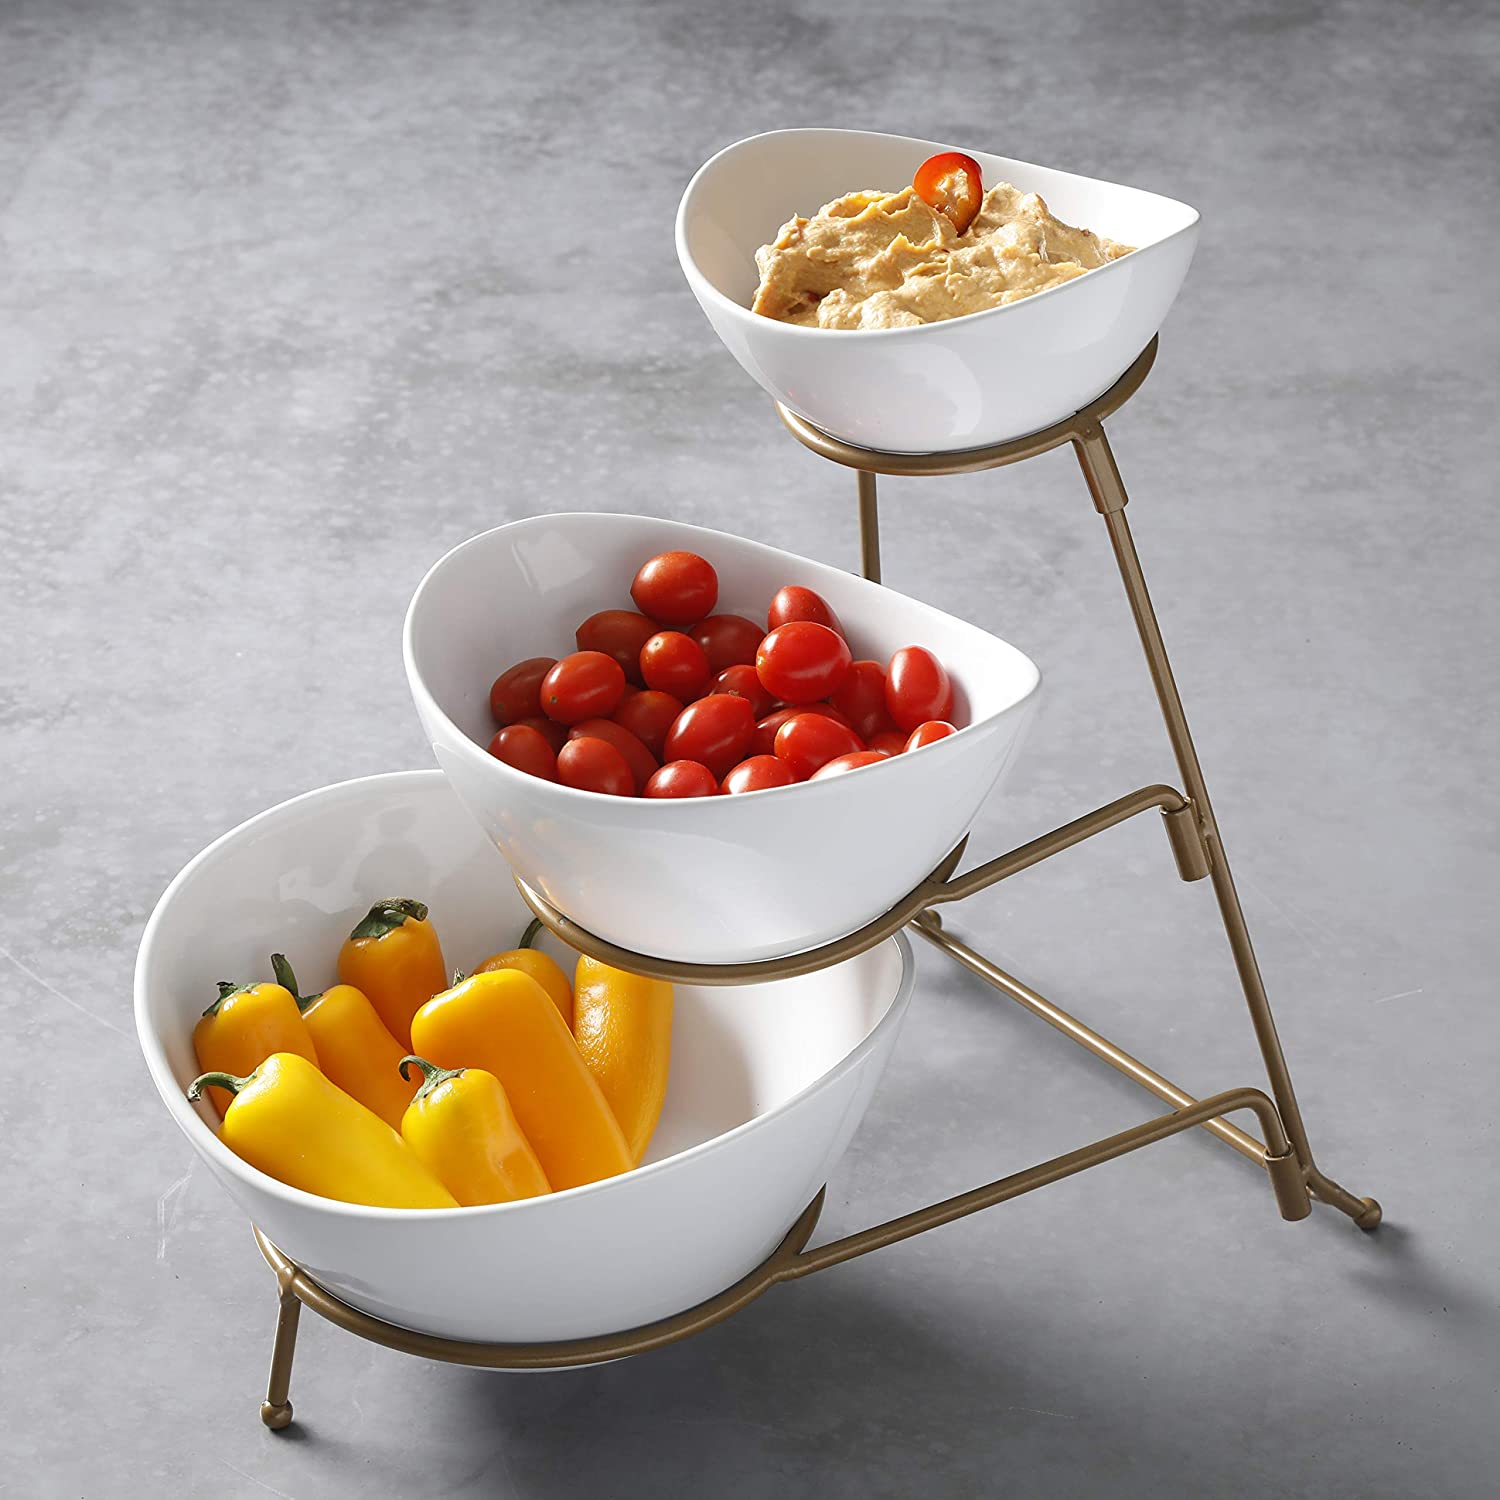 (Gold) - Gibson 3 Tiered Oval Chip And Dip Set With Metal Rack, Three Tier Dessert And Snack Server - Gold Wire (Gold)  ゴールド B07GWL2V58